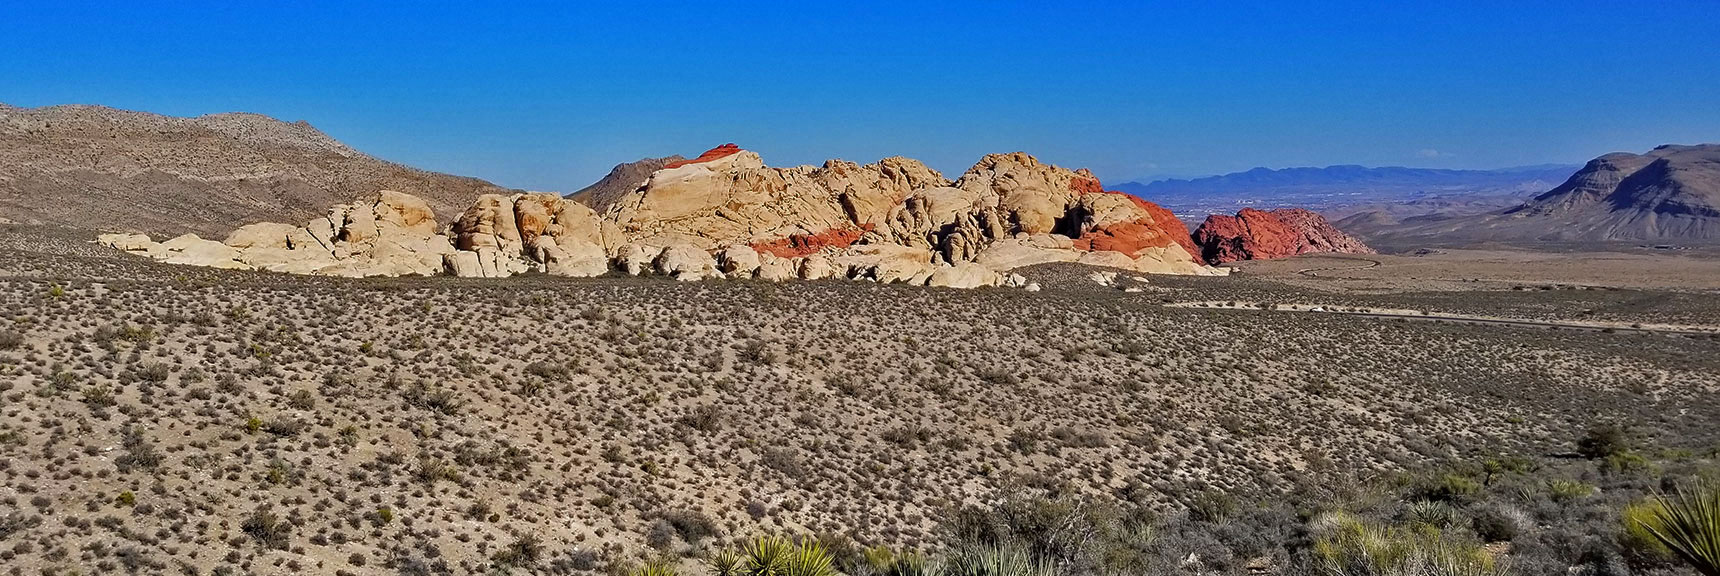 Red Rock National Park View of Calico Hills from Top of Scenic Drive